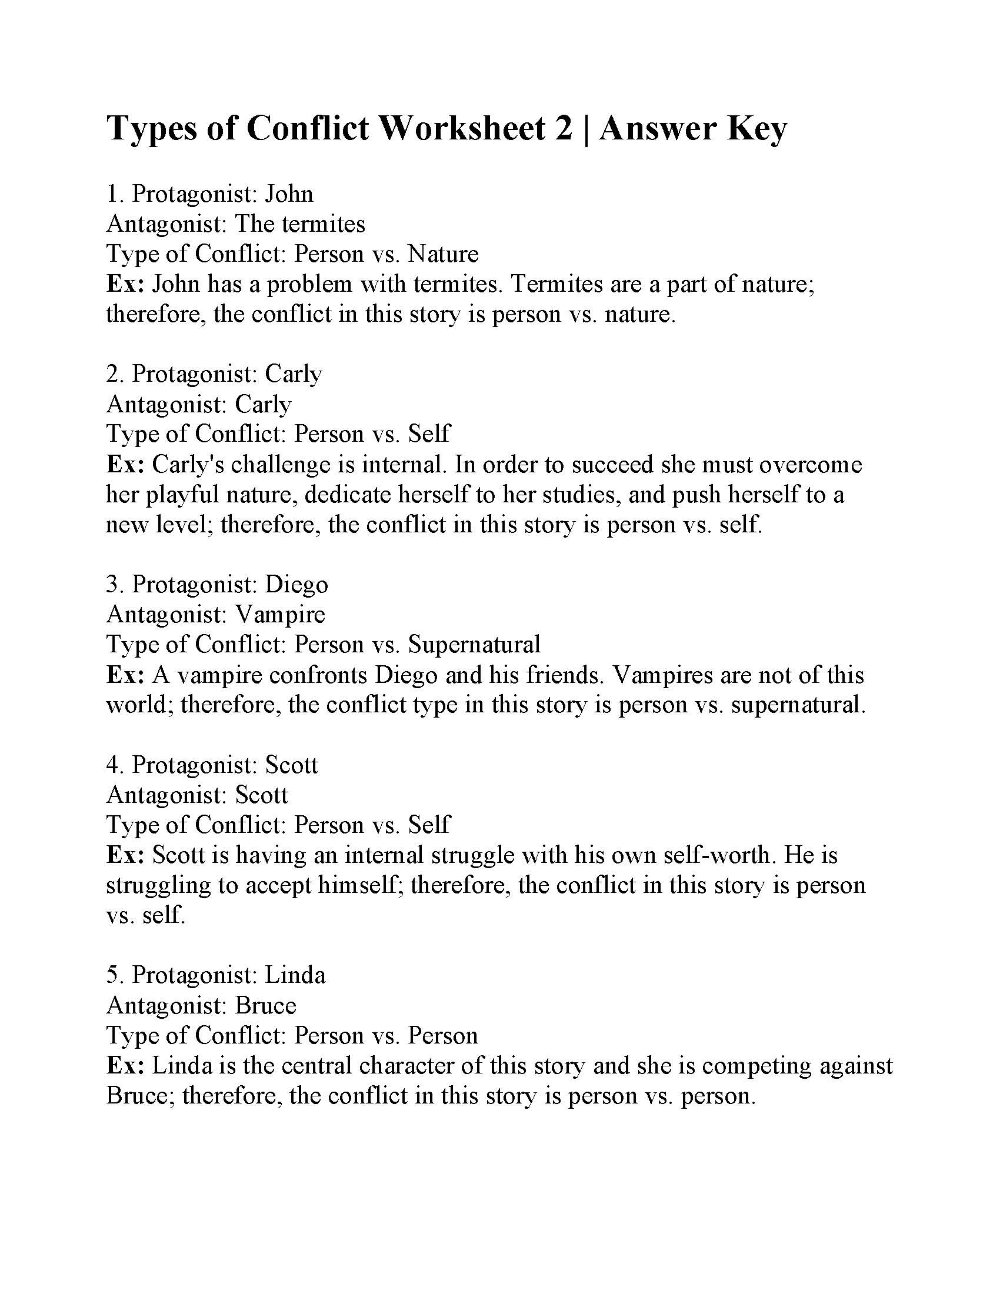 Types Of Conflict Worksheet 2 Answers Types Of Conflict